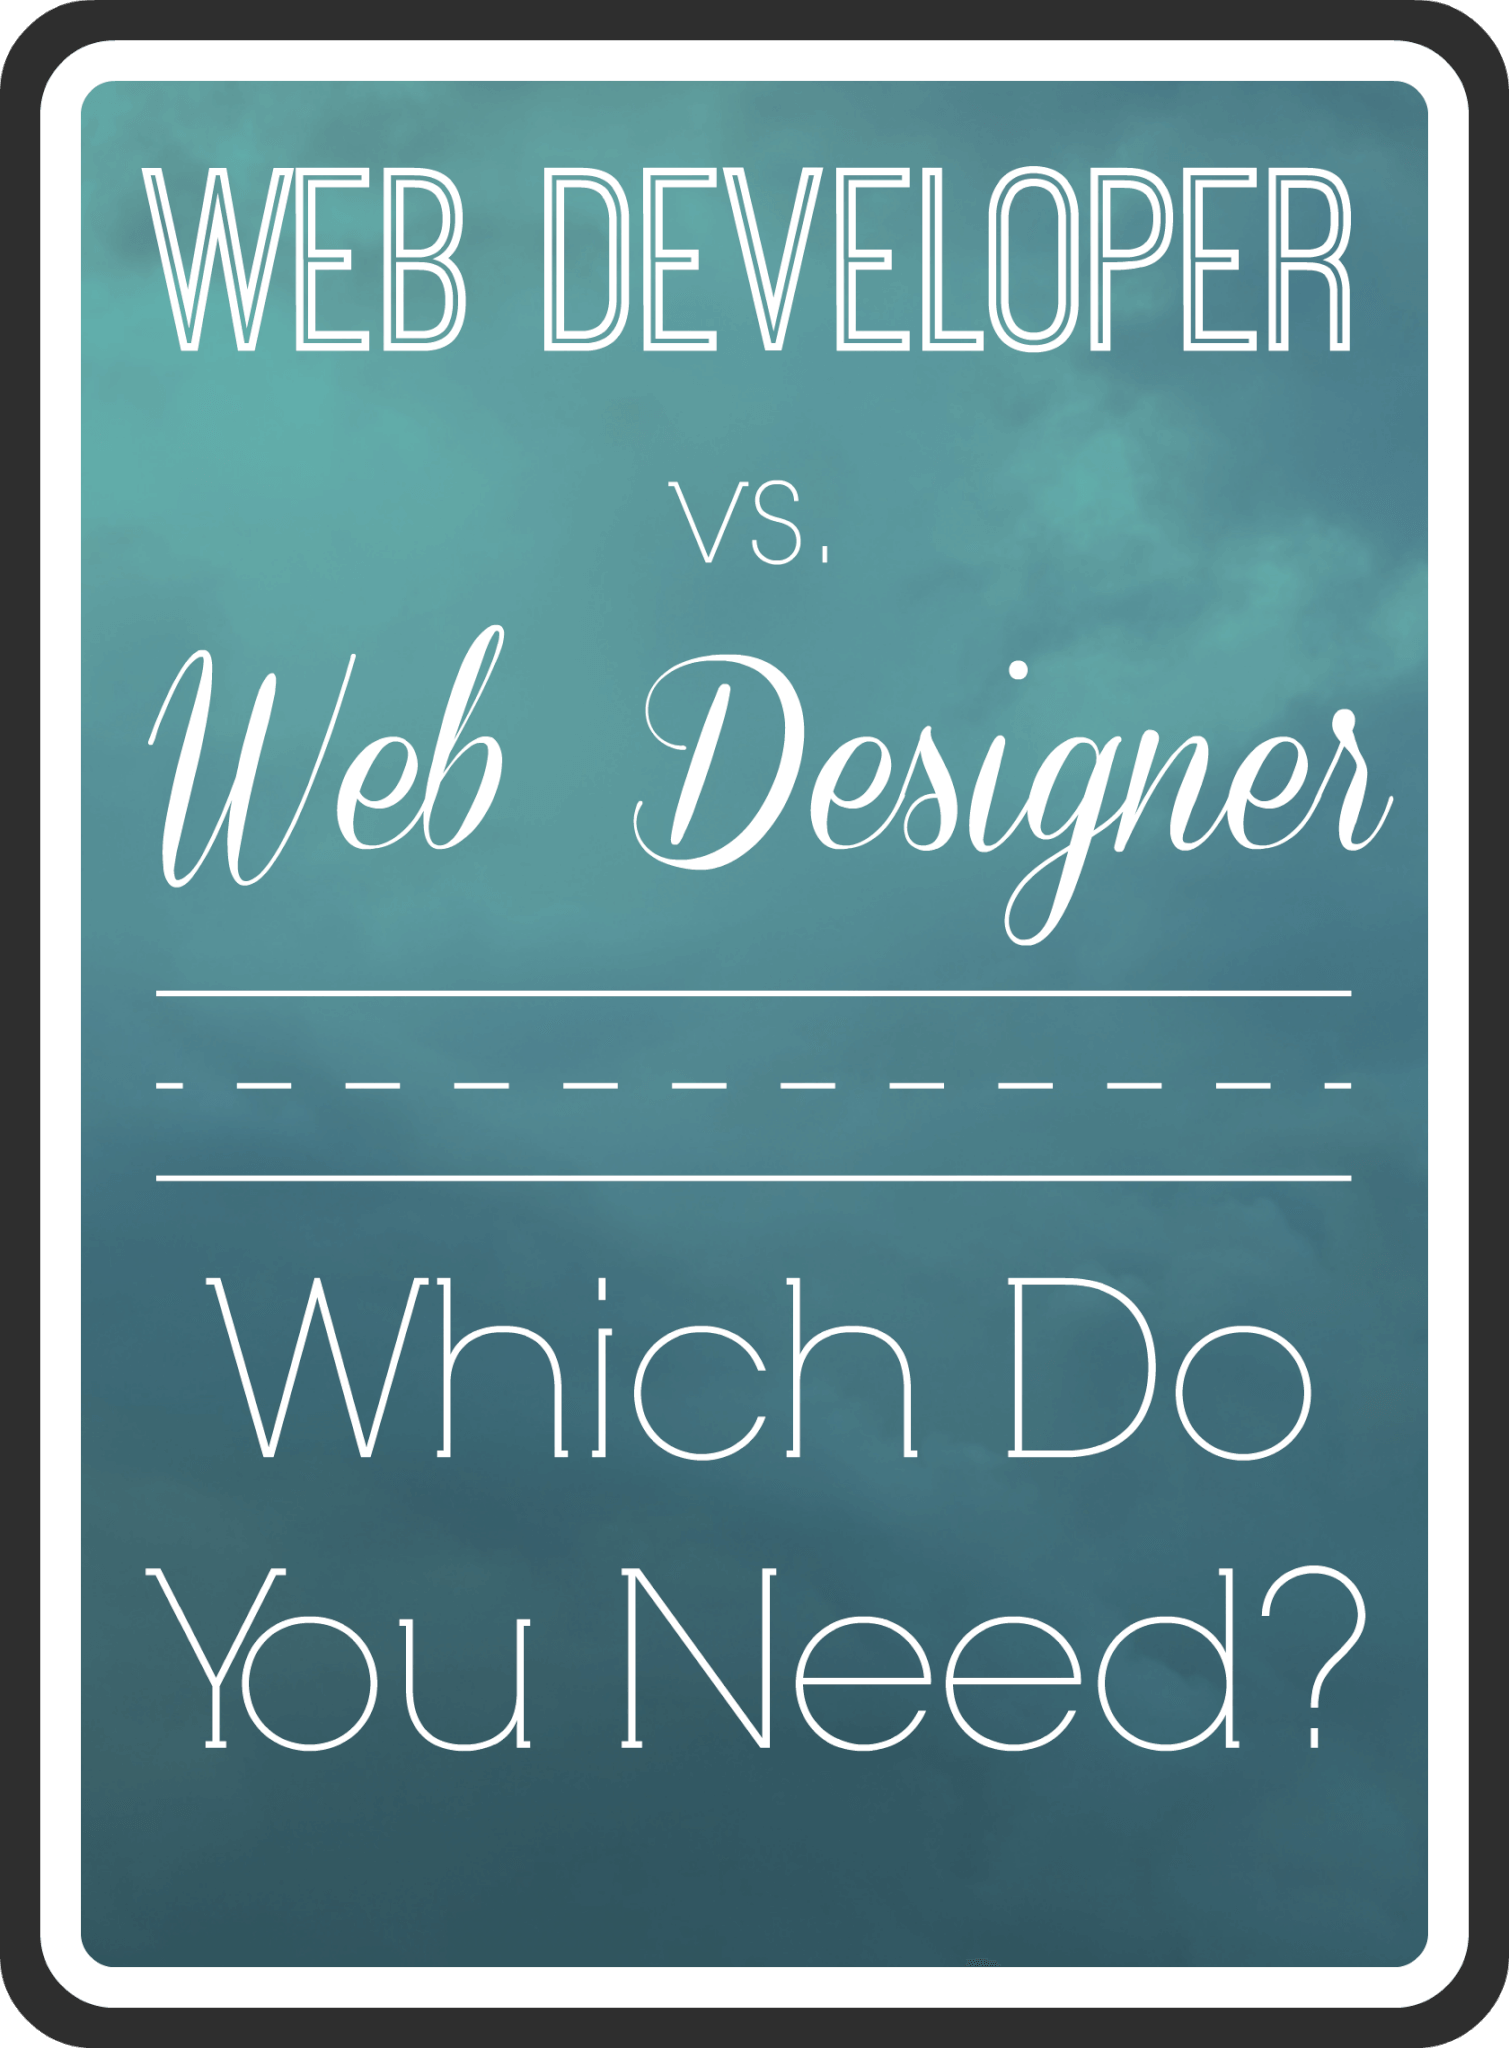 Web developer vs Web designer: How to Decide Which One You Need